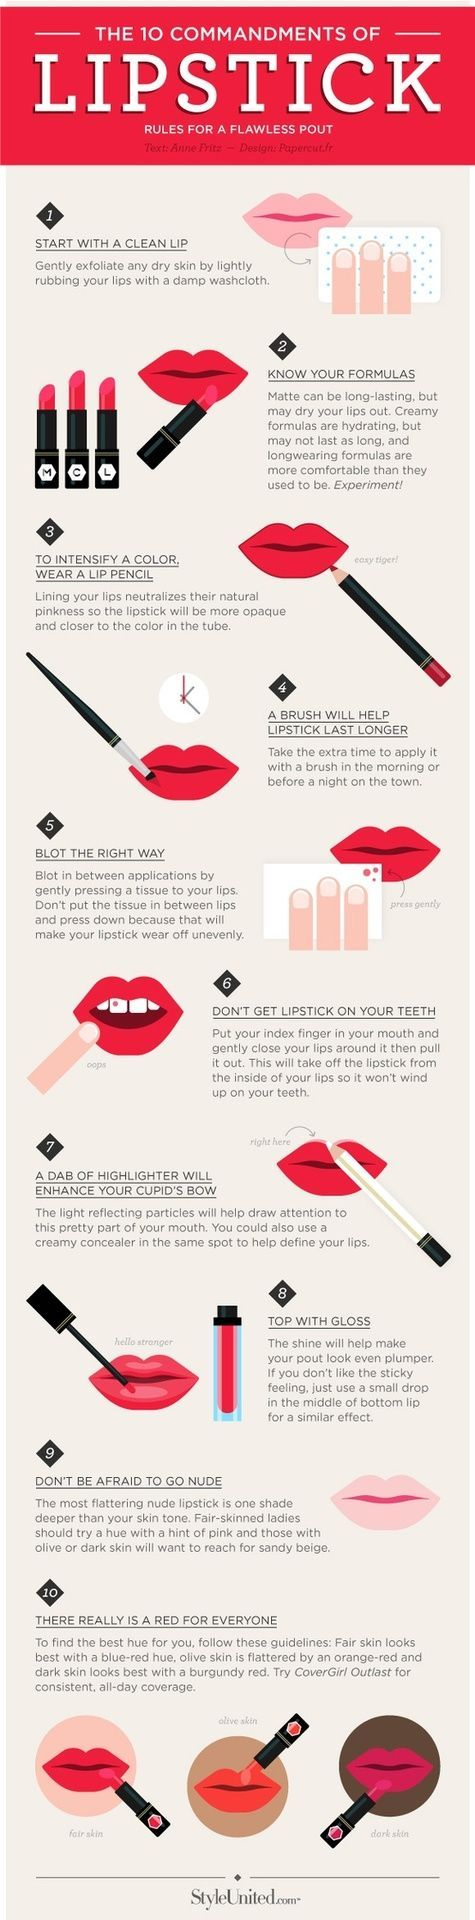 Great tips, however when choosing a re lip it depends what colors are in your skin i.e. I'm fair & have a yellow ton, so I use a yellow-orange base not blue (like Manhunt-NARS). Best advice try on the colors.